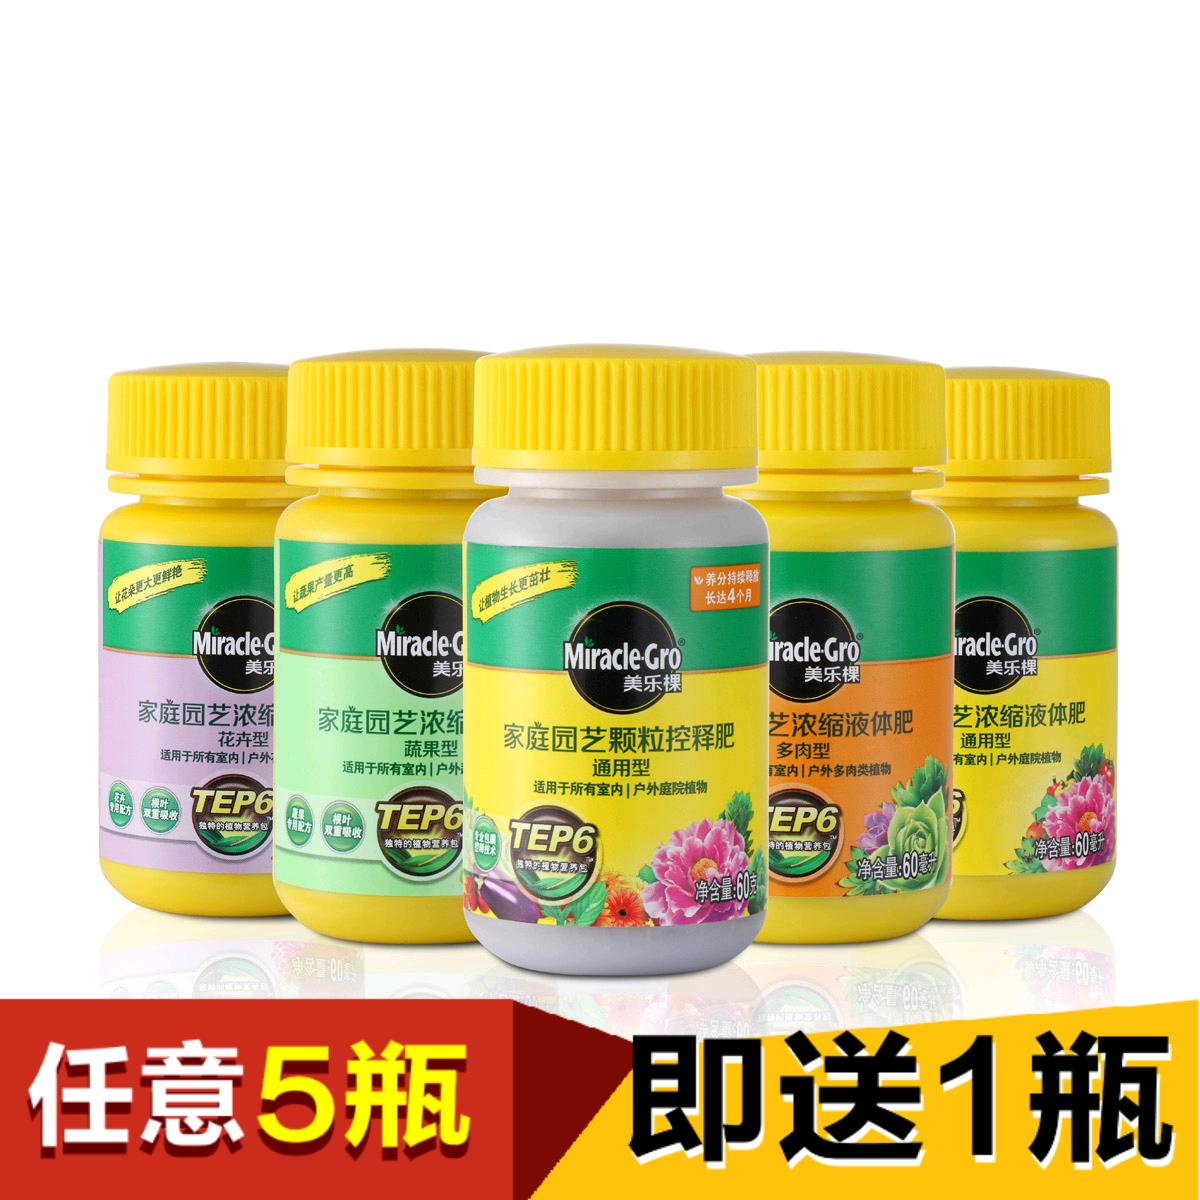 Melody trees gardening succulents release fertilizer orchid fertilizer nutrient fertilizer compound fertilizer slow release fertilizer vegetable fat 60 ml